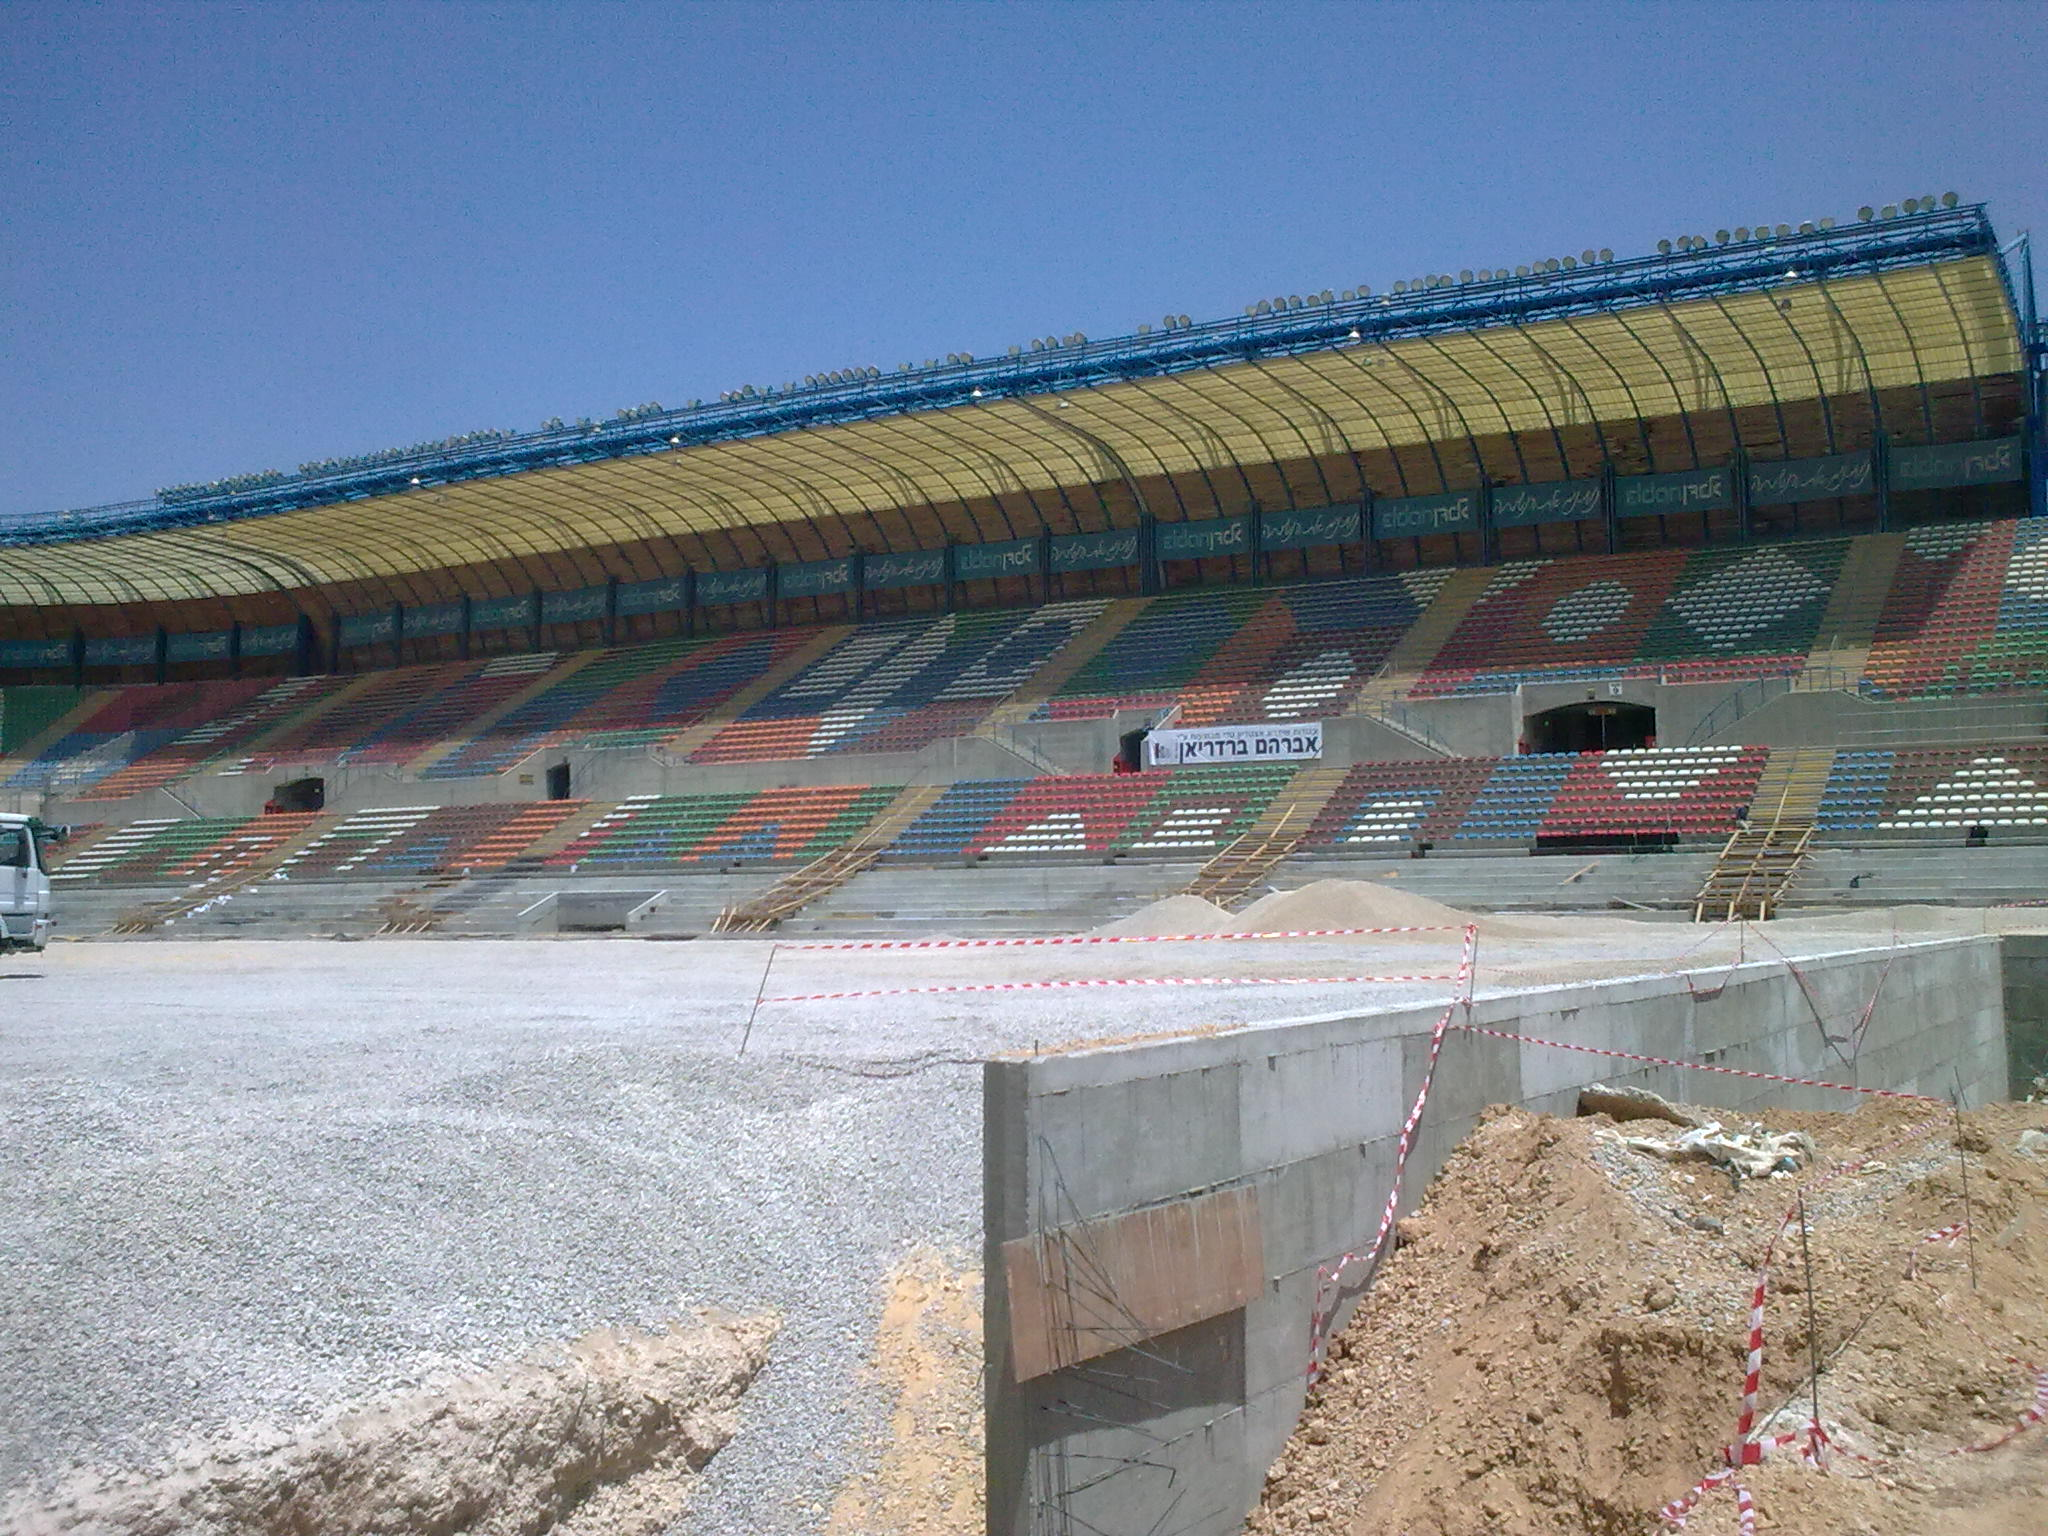 Teddy Stadium Renovation06.jpg English: Teddy Stadium, Jerusalem עברית: אצטדיון טדי, ירושלים Date 27 July 2011 Source Own work Author Little